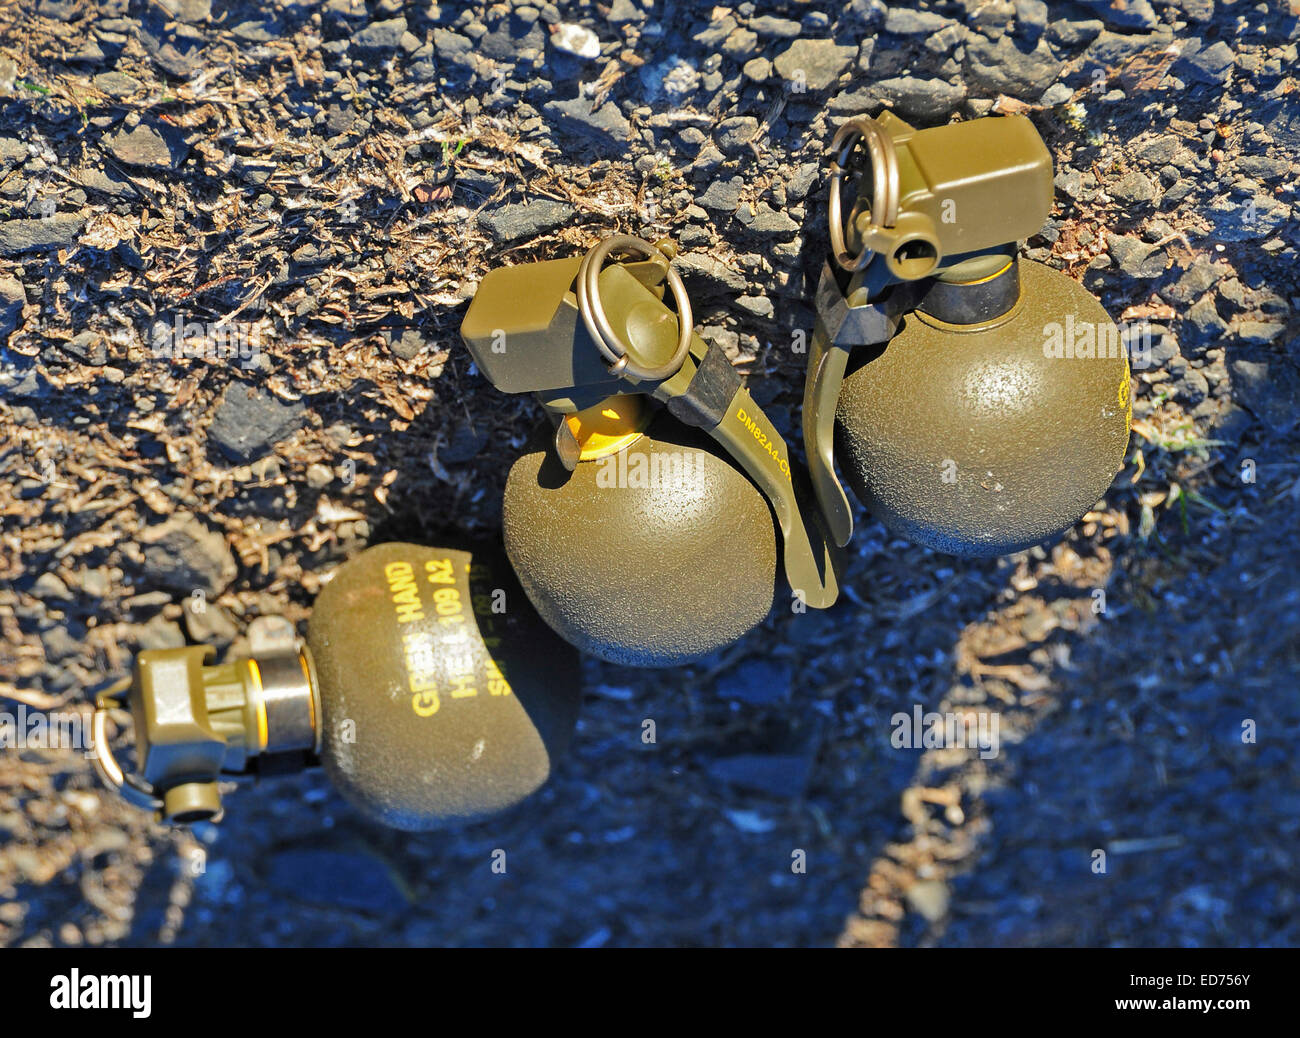 British L2 hand grenades primed ready to use. - Stock Image